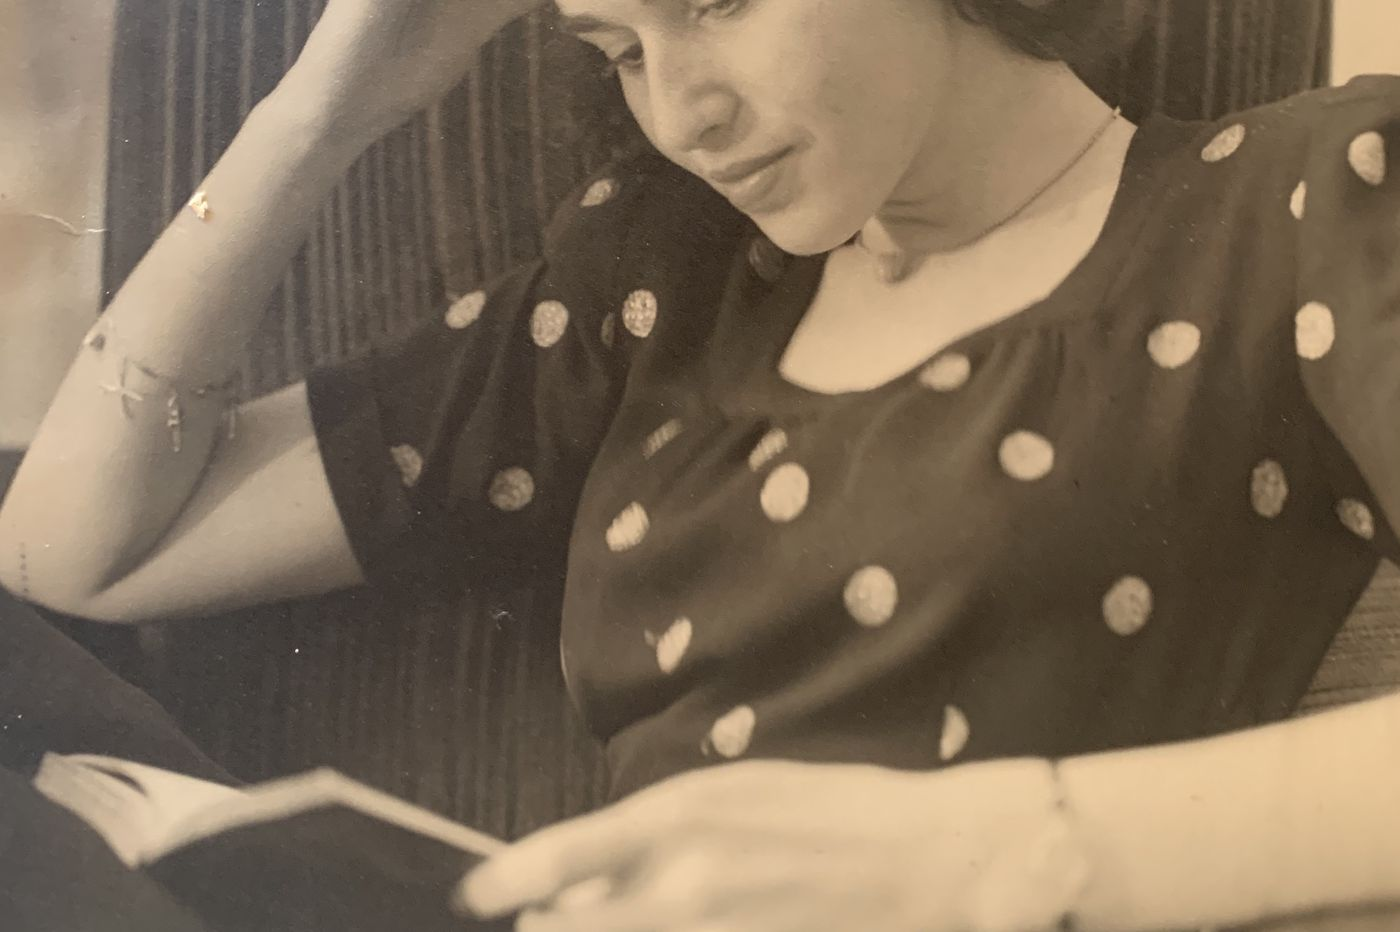 Nida S. Bernstein, 99, a volunteer, art lover, and descendant of early Jewish Americans